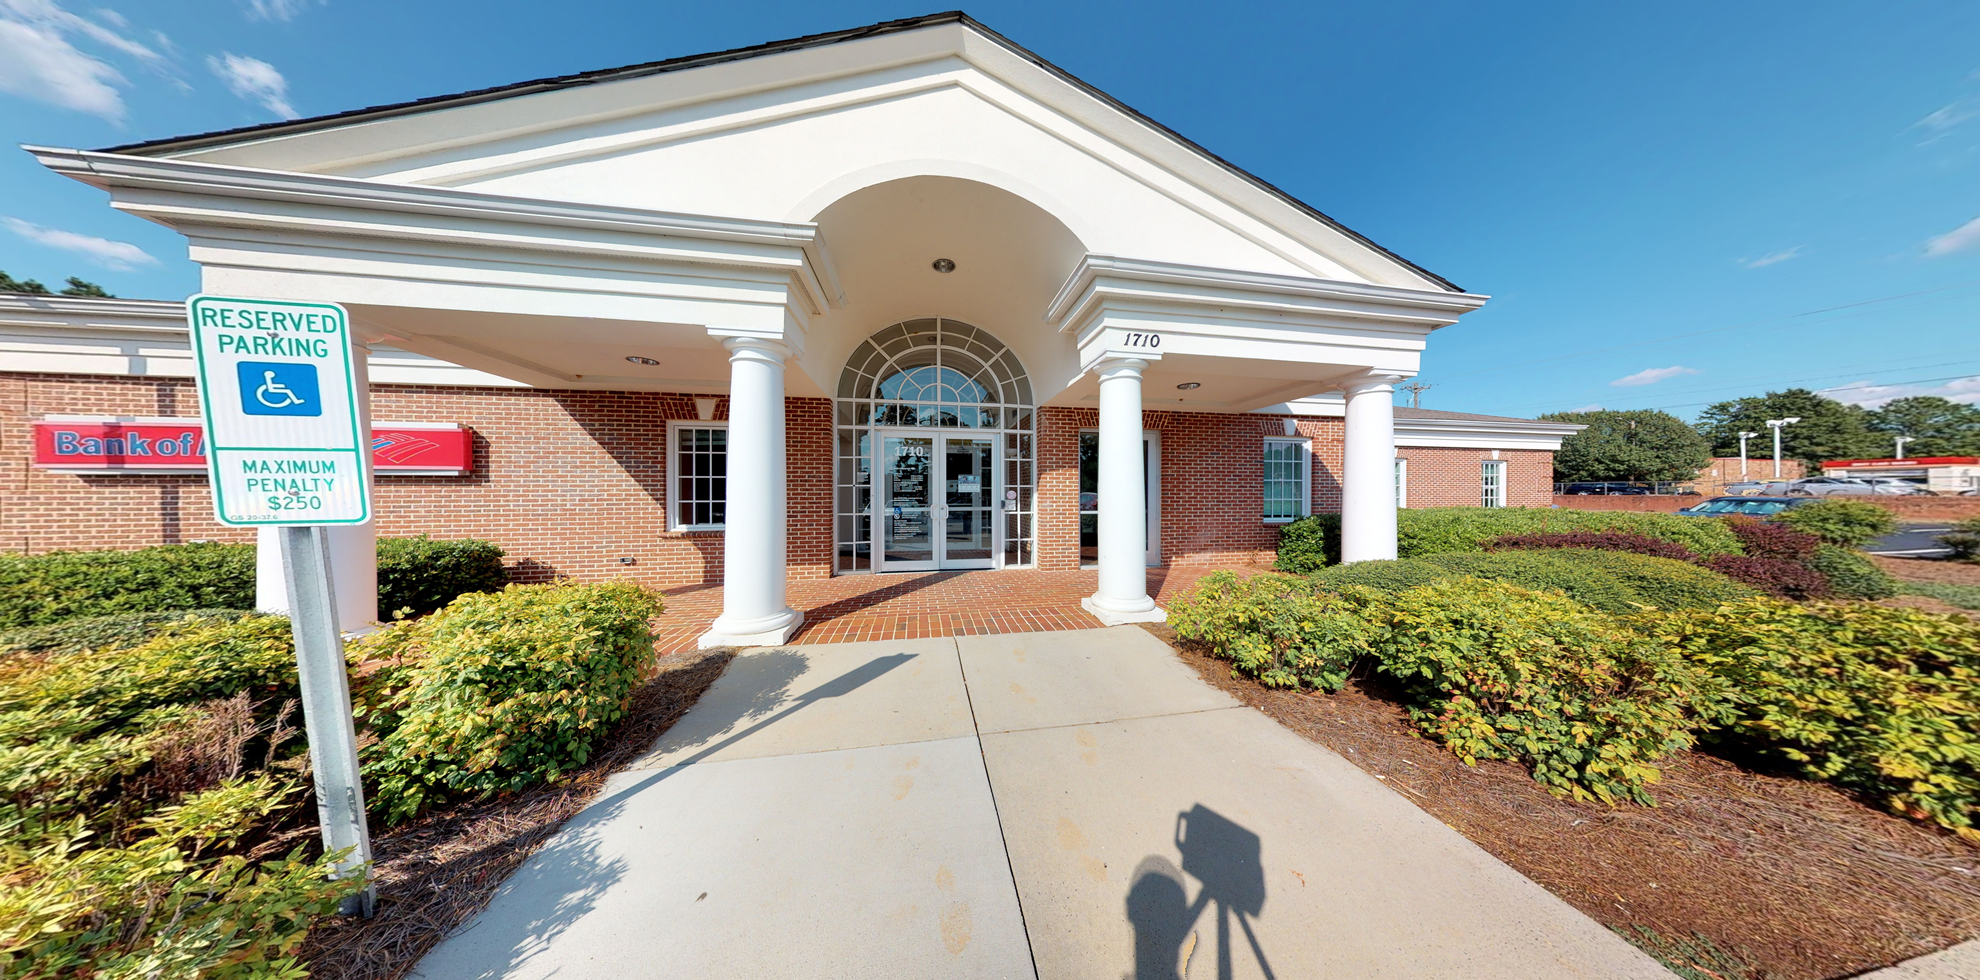 Bank of America financial center with drive-thru ATM | 1710 Heckle Blvd, Rock Hill, SC 29732